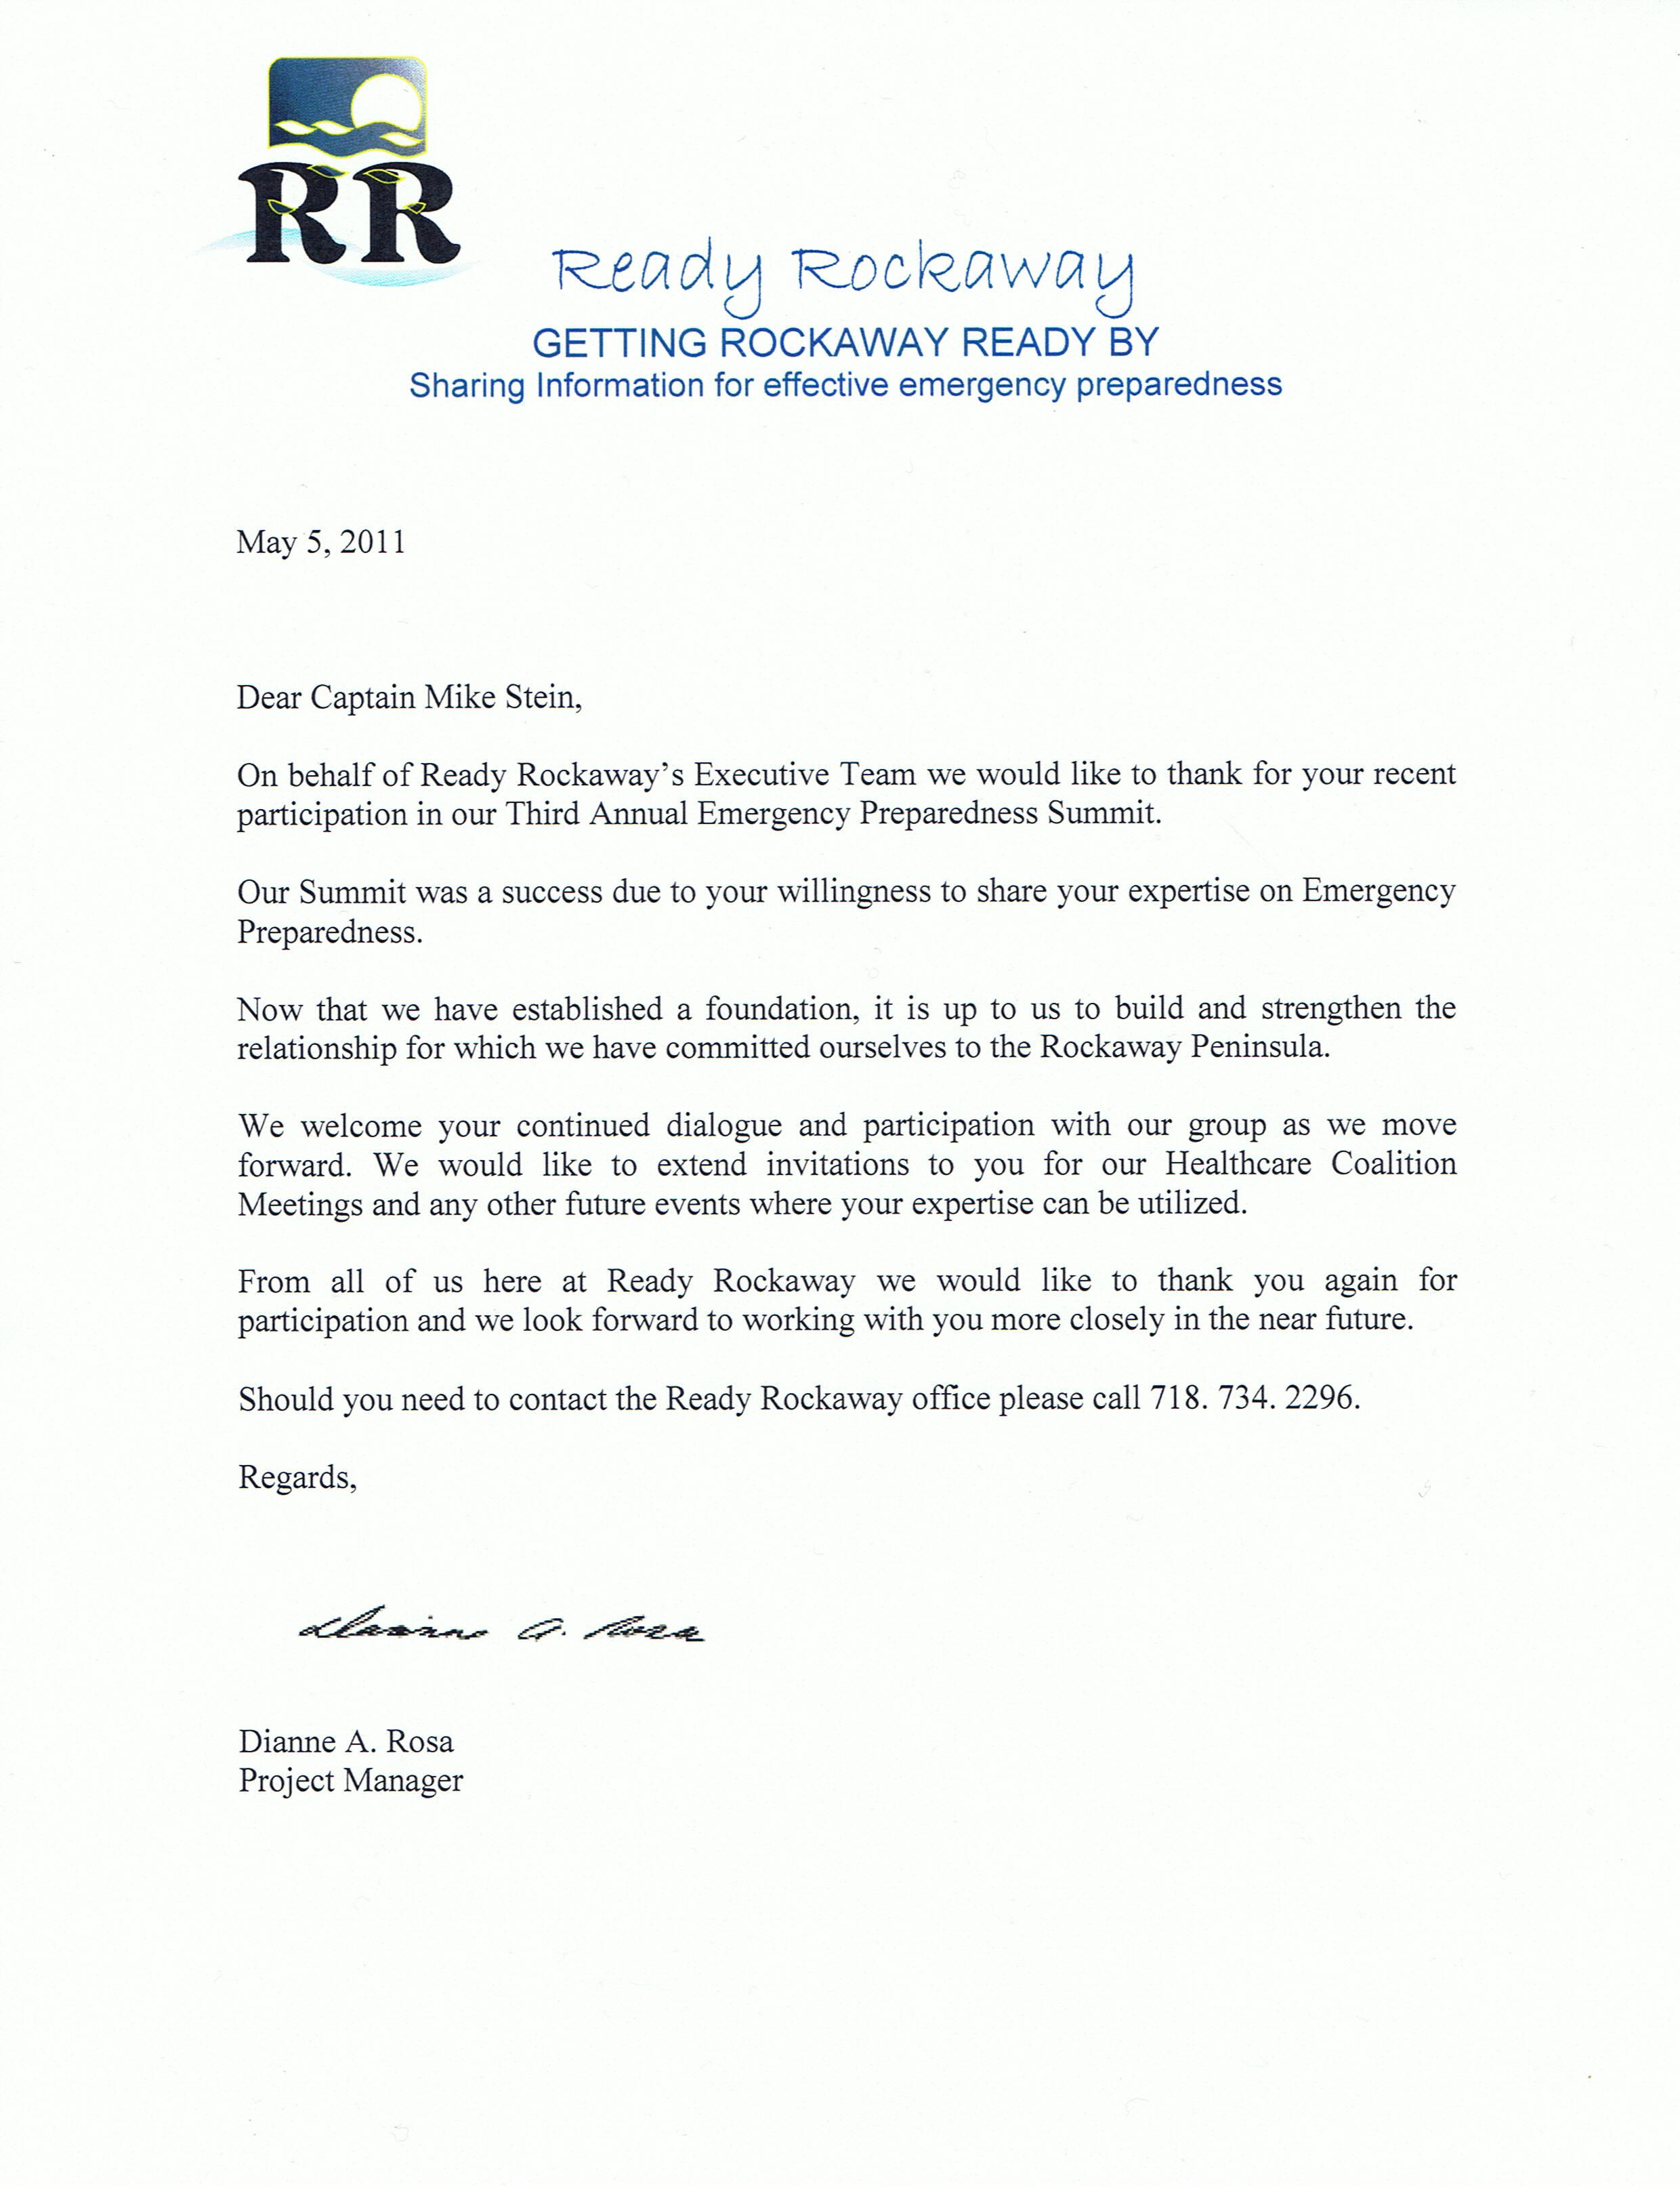 Business Thanks Letter Sle   Images  Business Letter Kindly